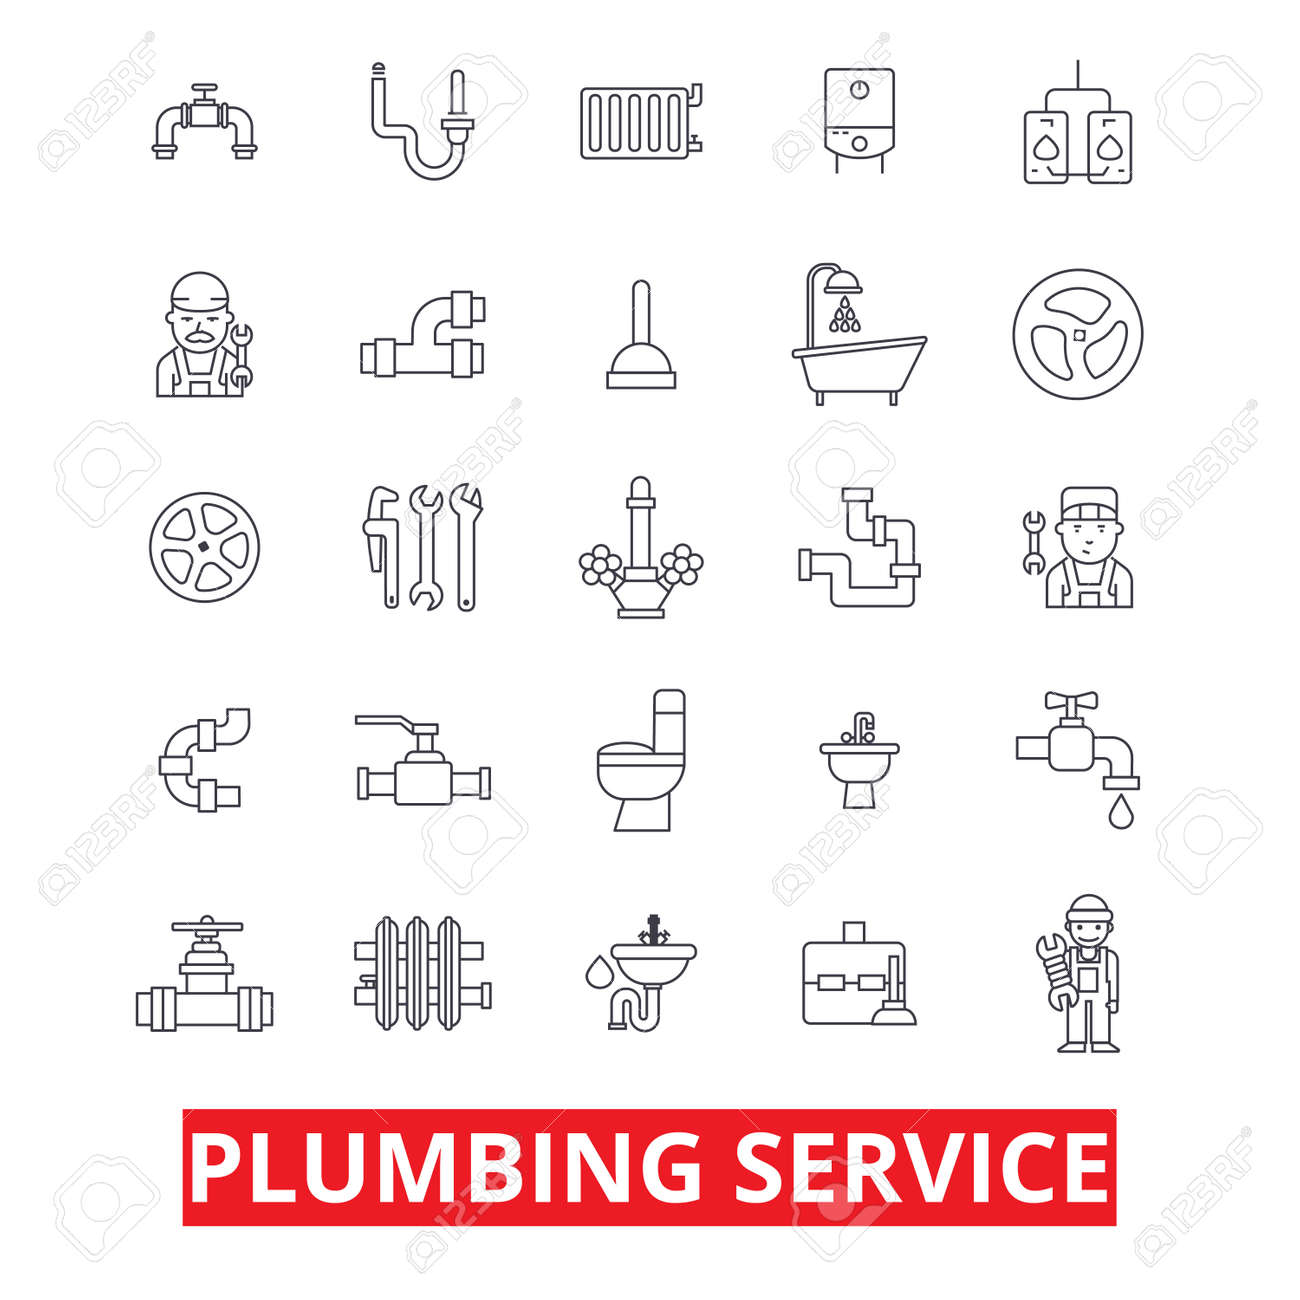 Plumbing Service, Pipes, Heating, Tools, Plumber, Water, Plum ...